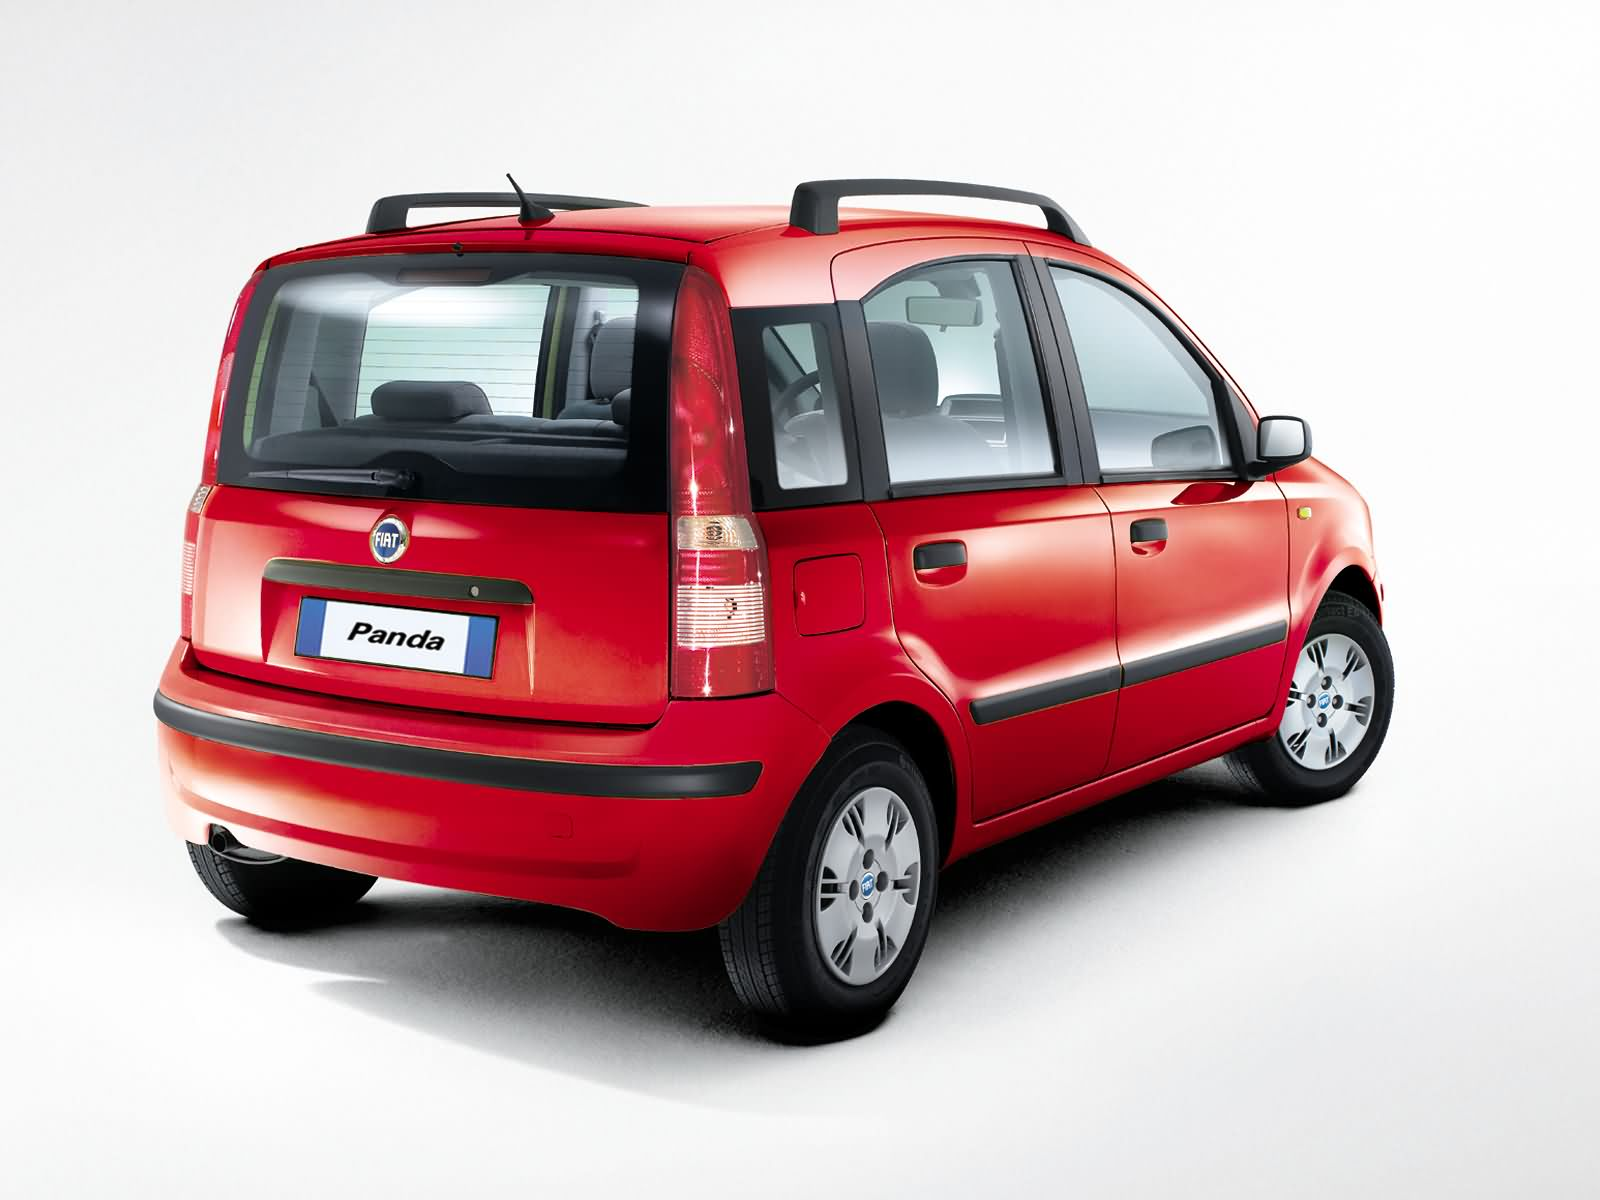 428 Fiat Panda key 6 as well Image 53 Fiat Panda vs Punto 1 together with 10702 likewise Wallpaper 16 besides 10711. on fiat panda